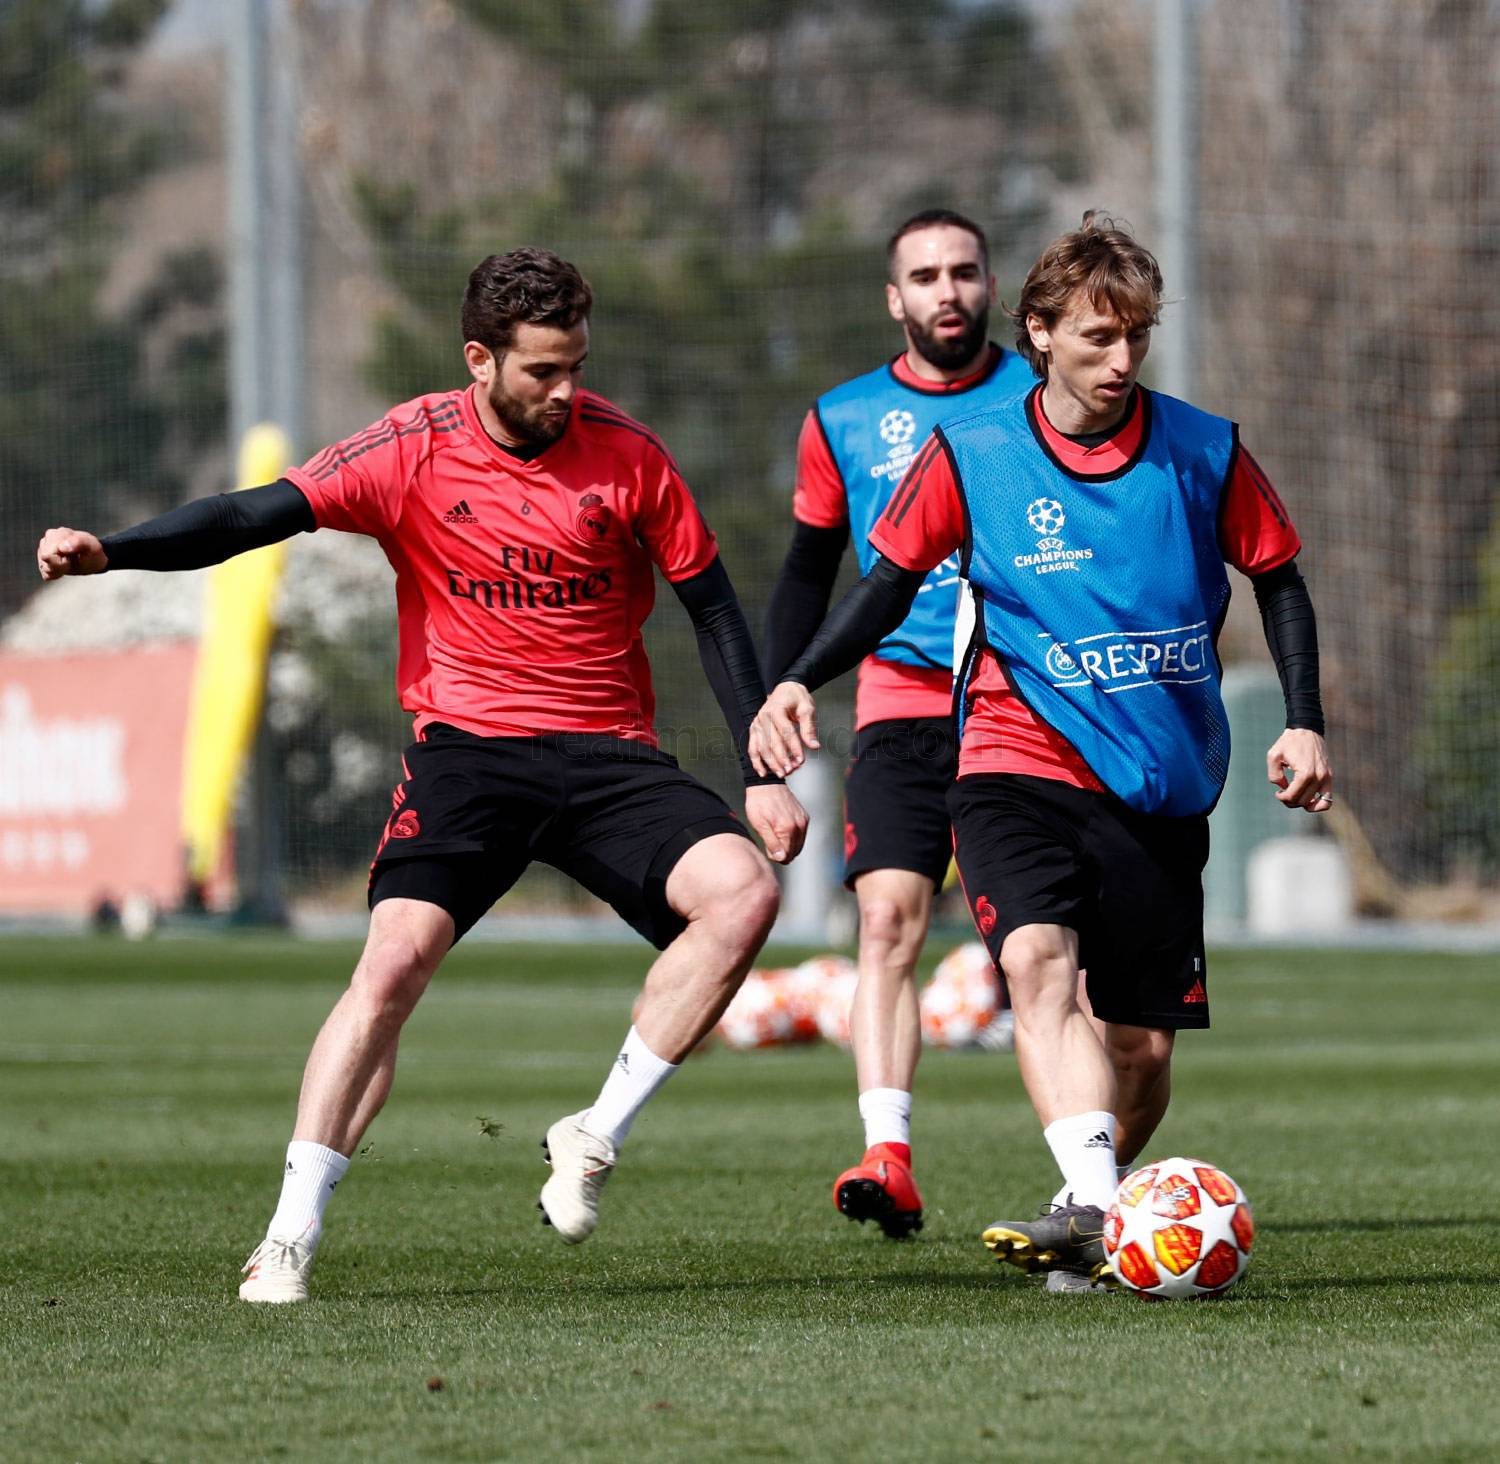 Real Madrid - Entrenamiento del Real Madrid - 04-03-2019